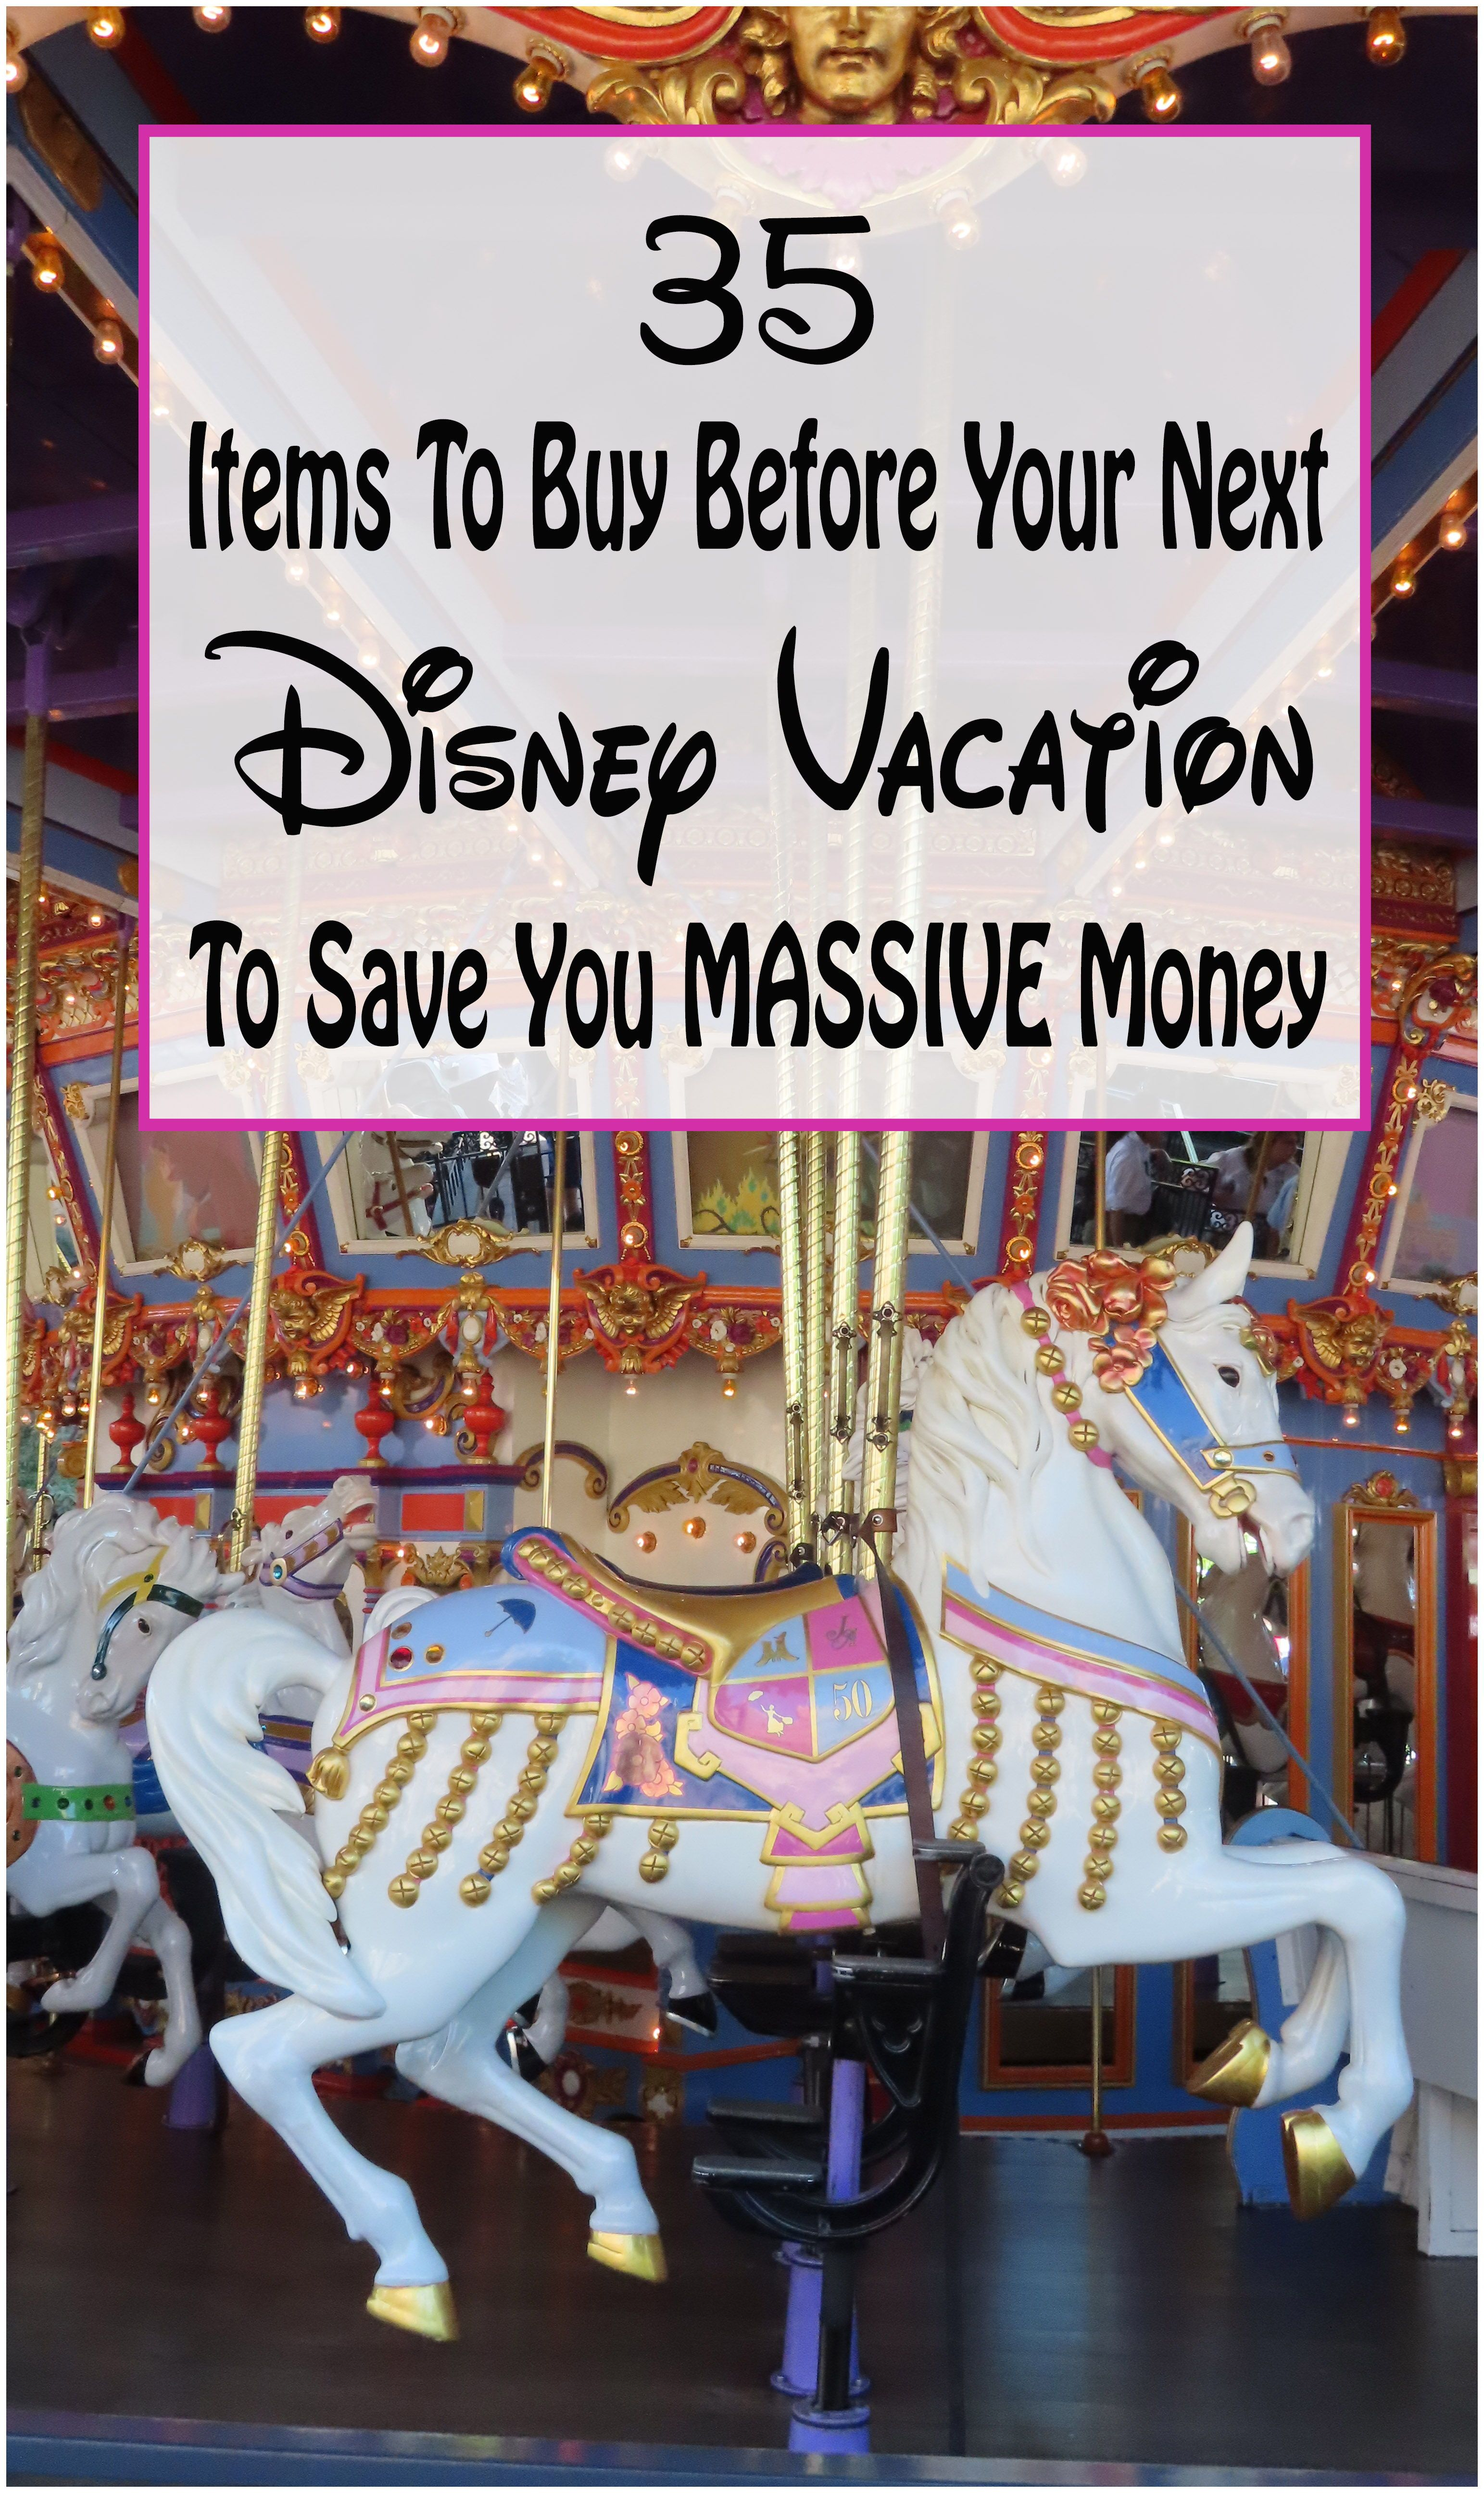 Pin By Live One Good Life On Disney Trip In 2020 Disney Trip